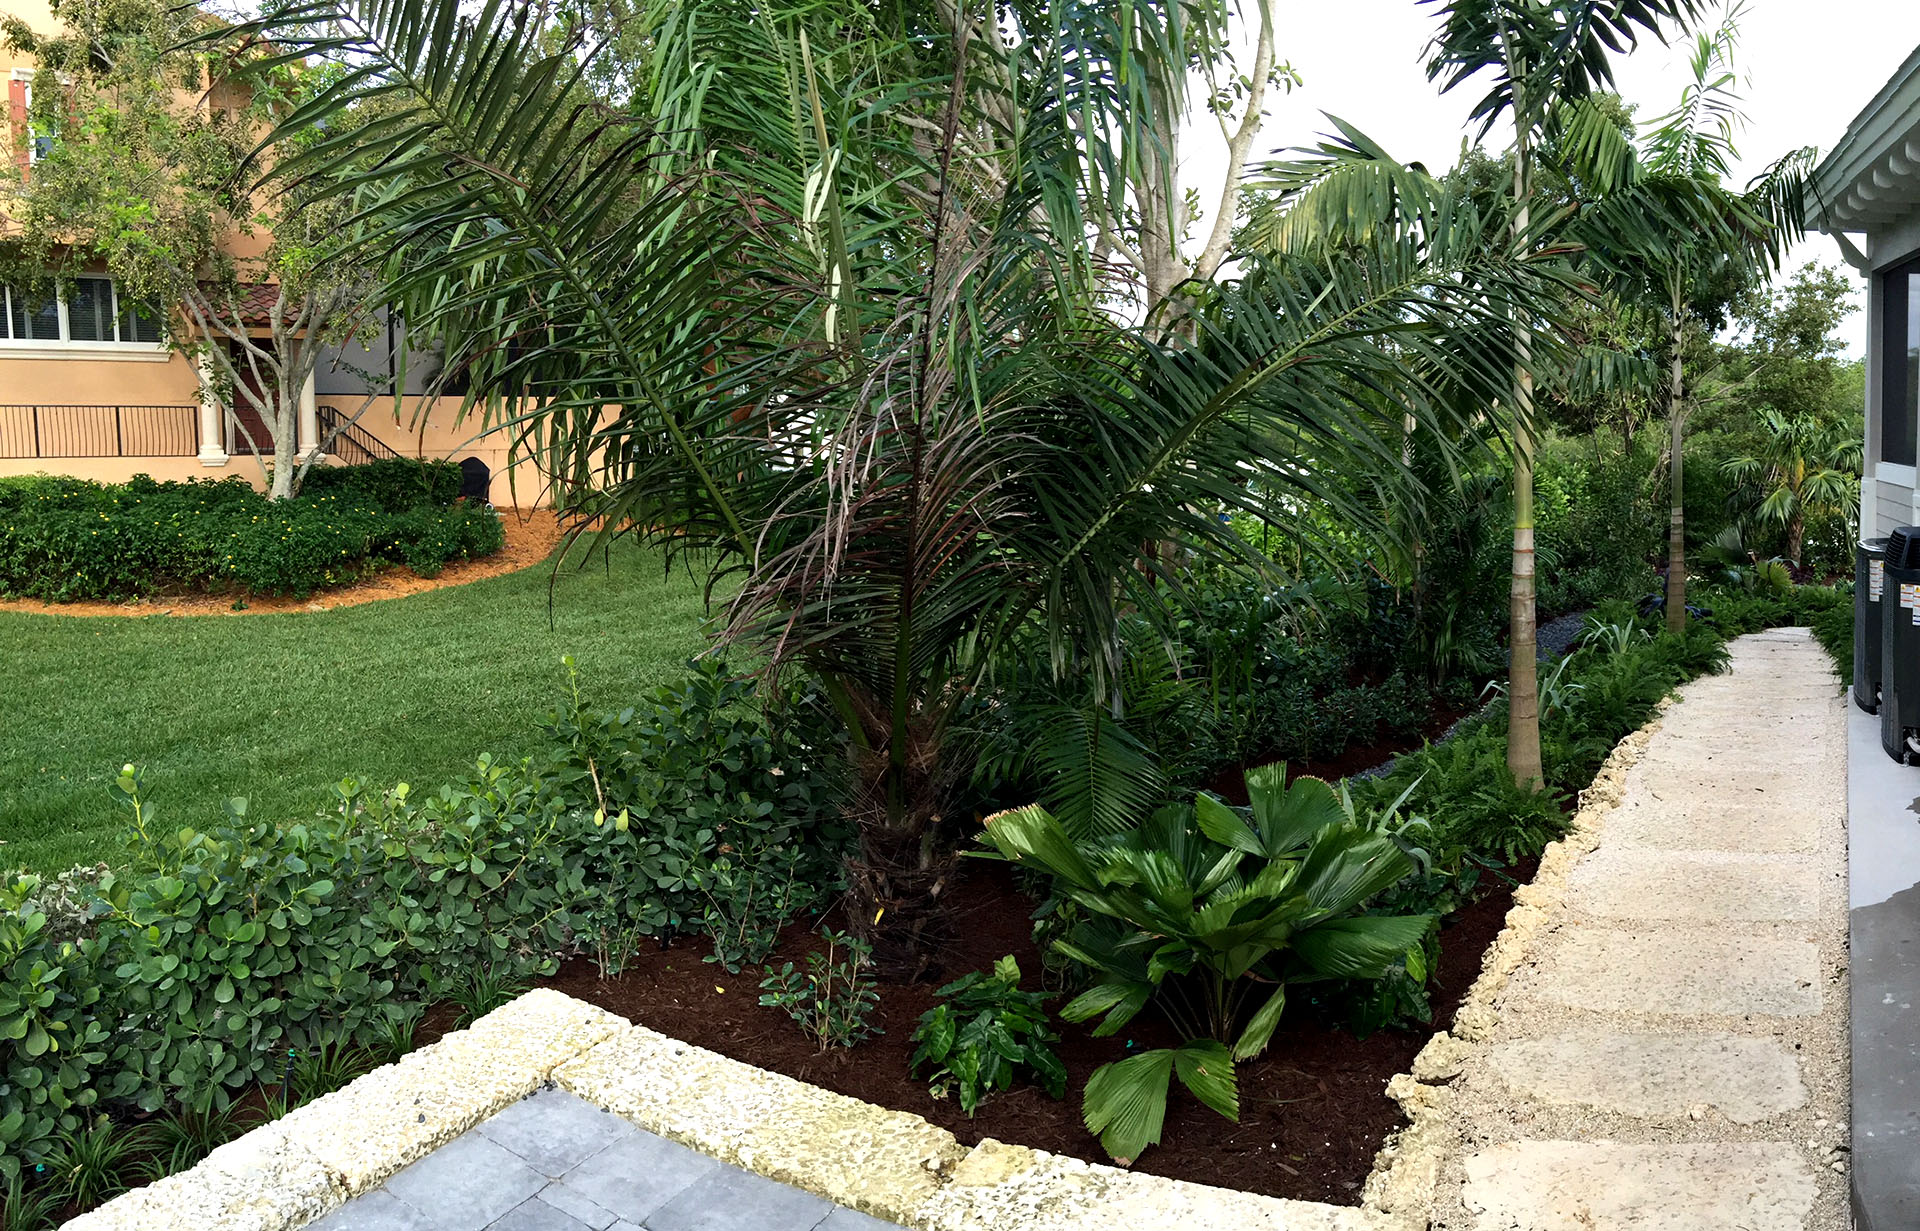 Landscaping Services Companies in Kendall